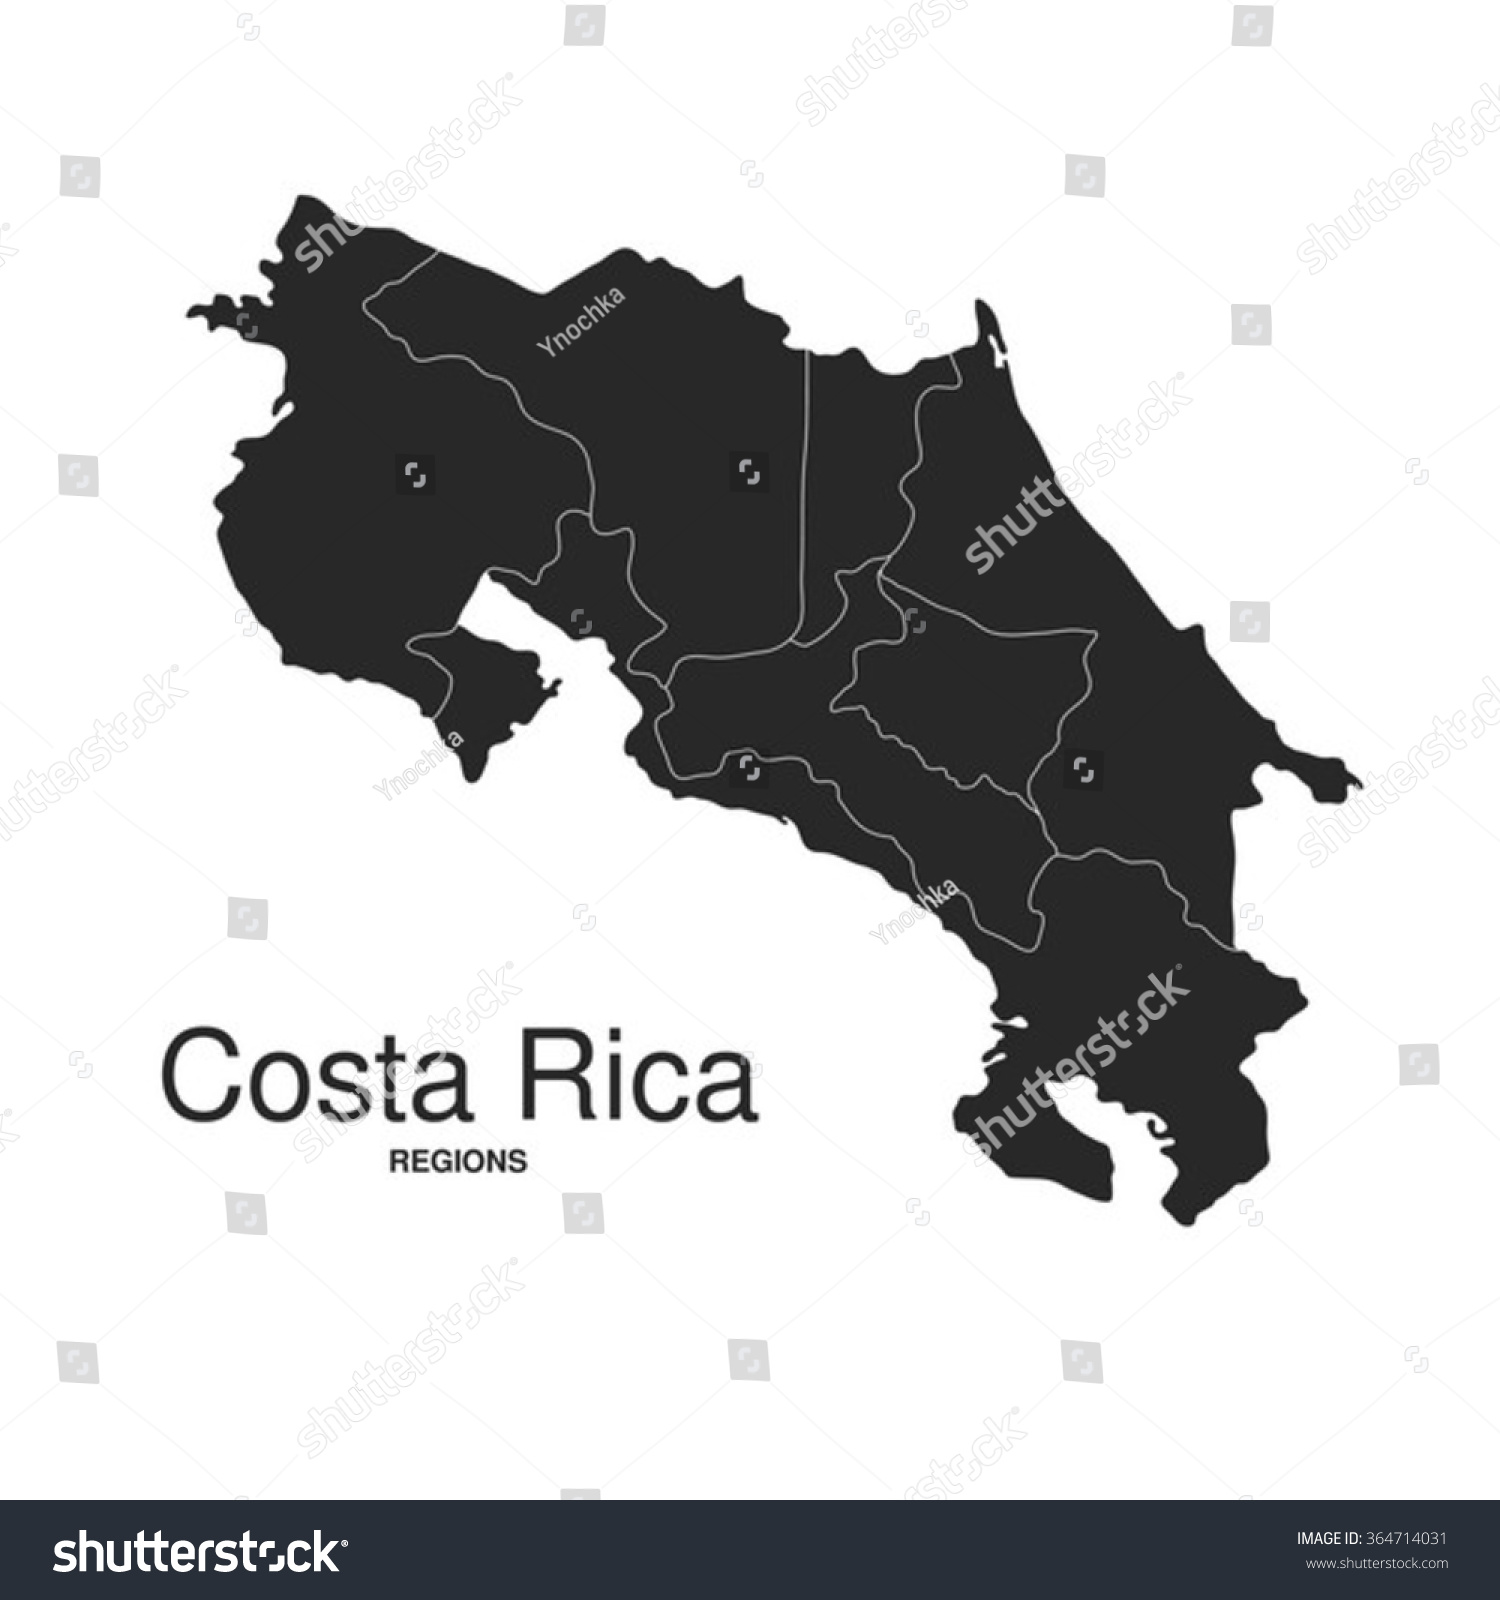 Costa Rica Silhouette Regions Map Stock Vector - Costa rica regions map